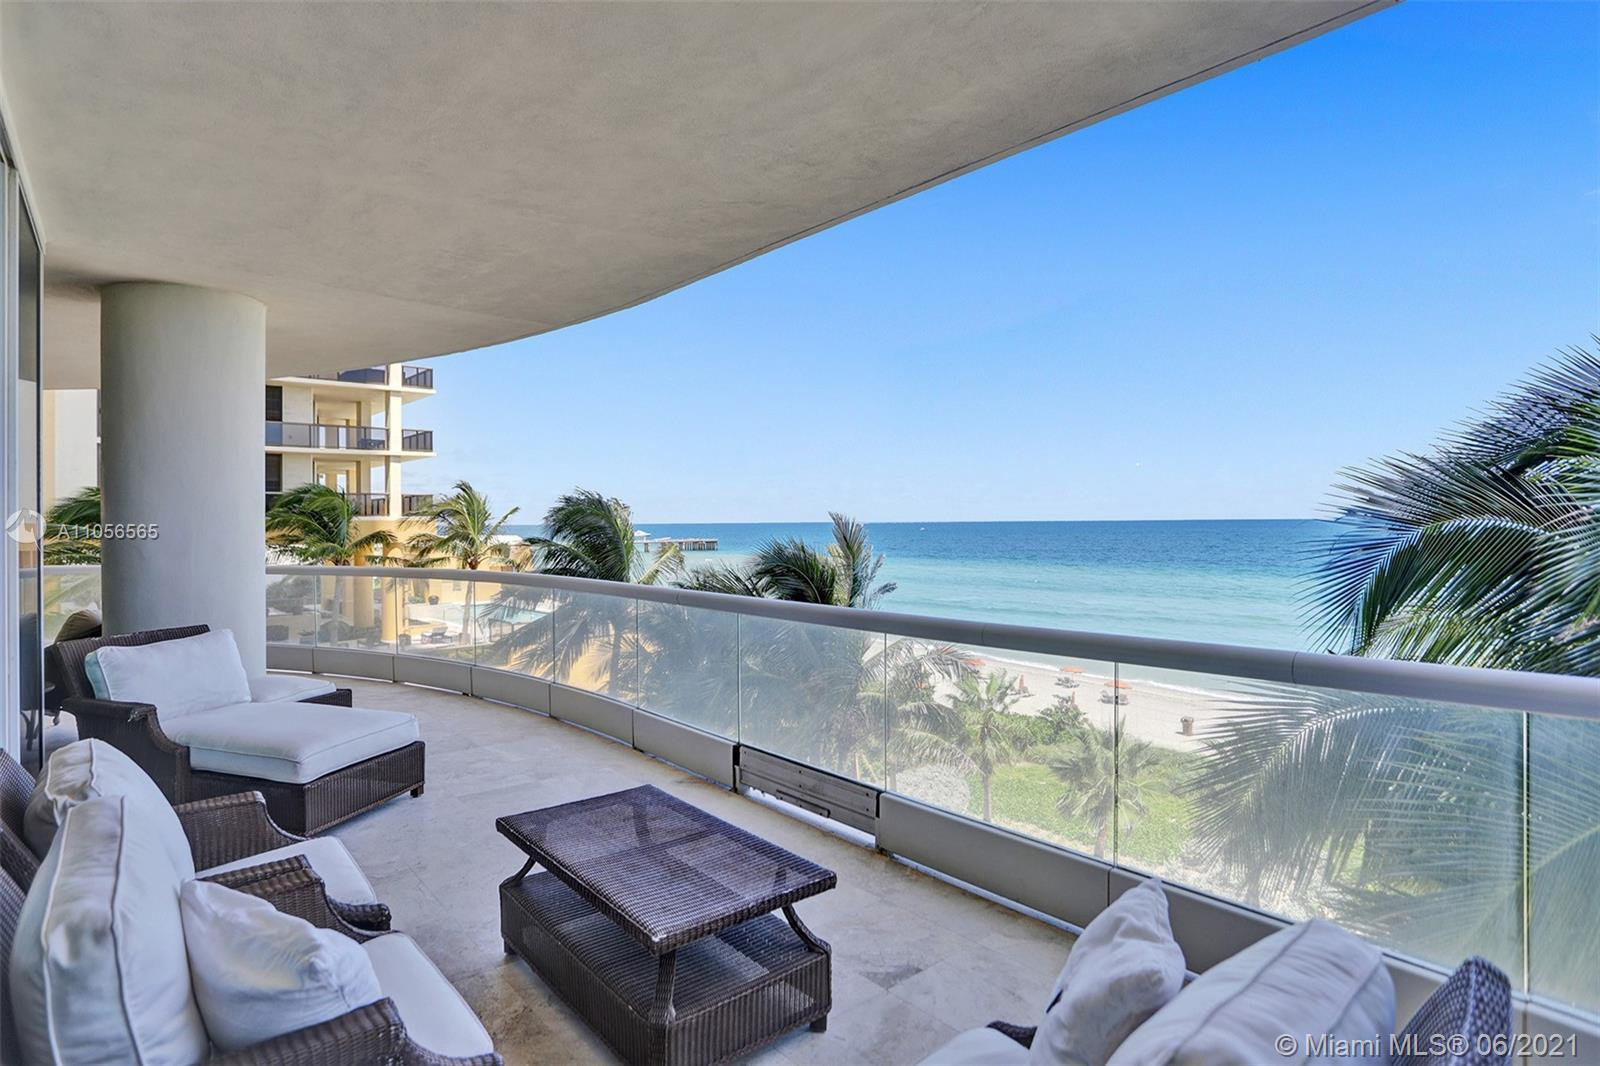 BEAUTIFUL OCEAN FRONT APARTMENT !!! 4BR/6BA UNIT AND 1/2 BATH. TASTEFULLY FURNISHED. DIRECT ACCESS T